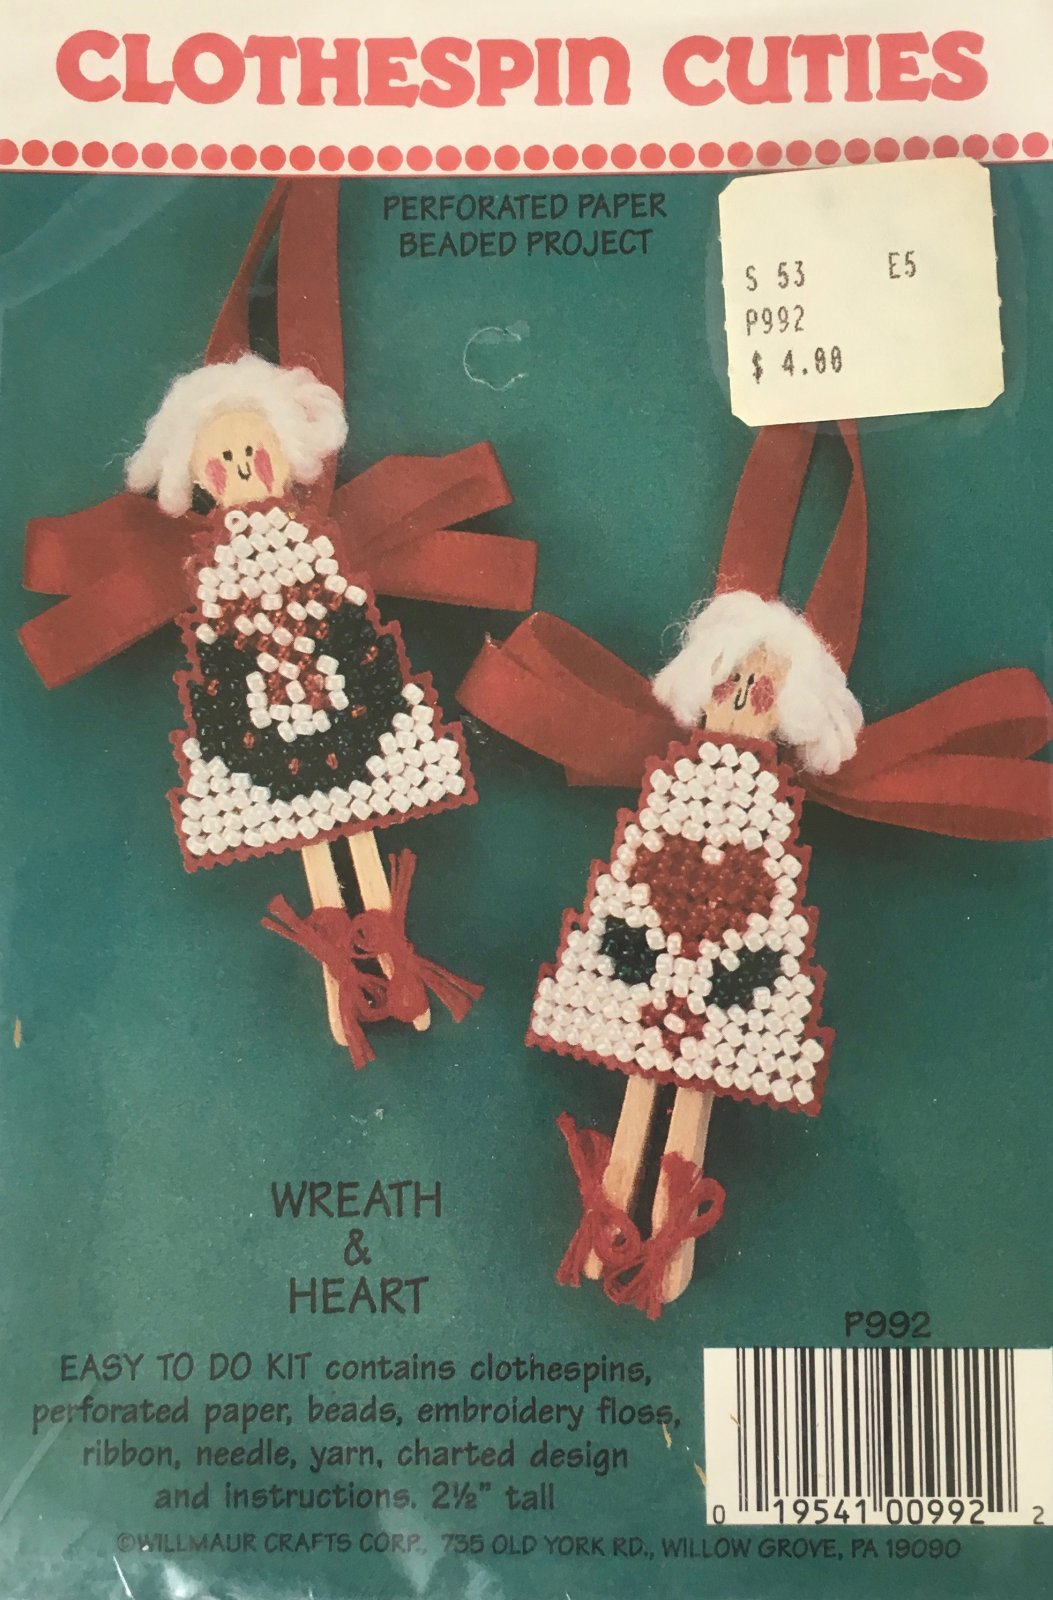 Astor Place: Clothespin Cuties Wreath & Heart Kit P992